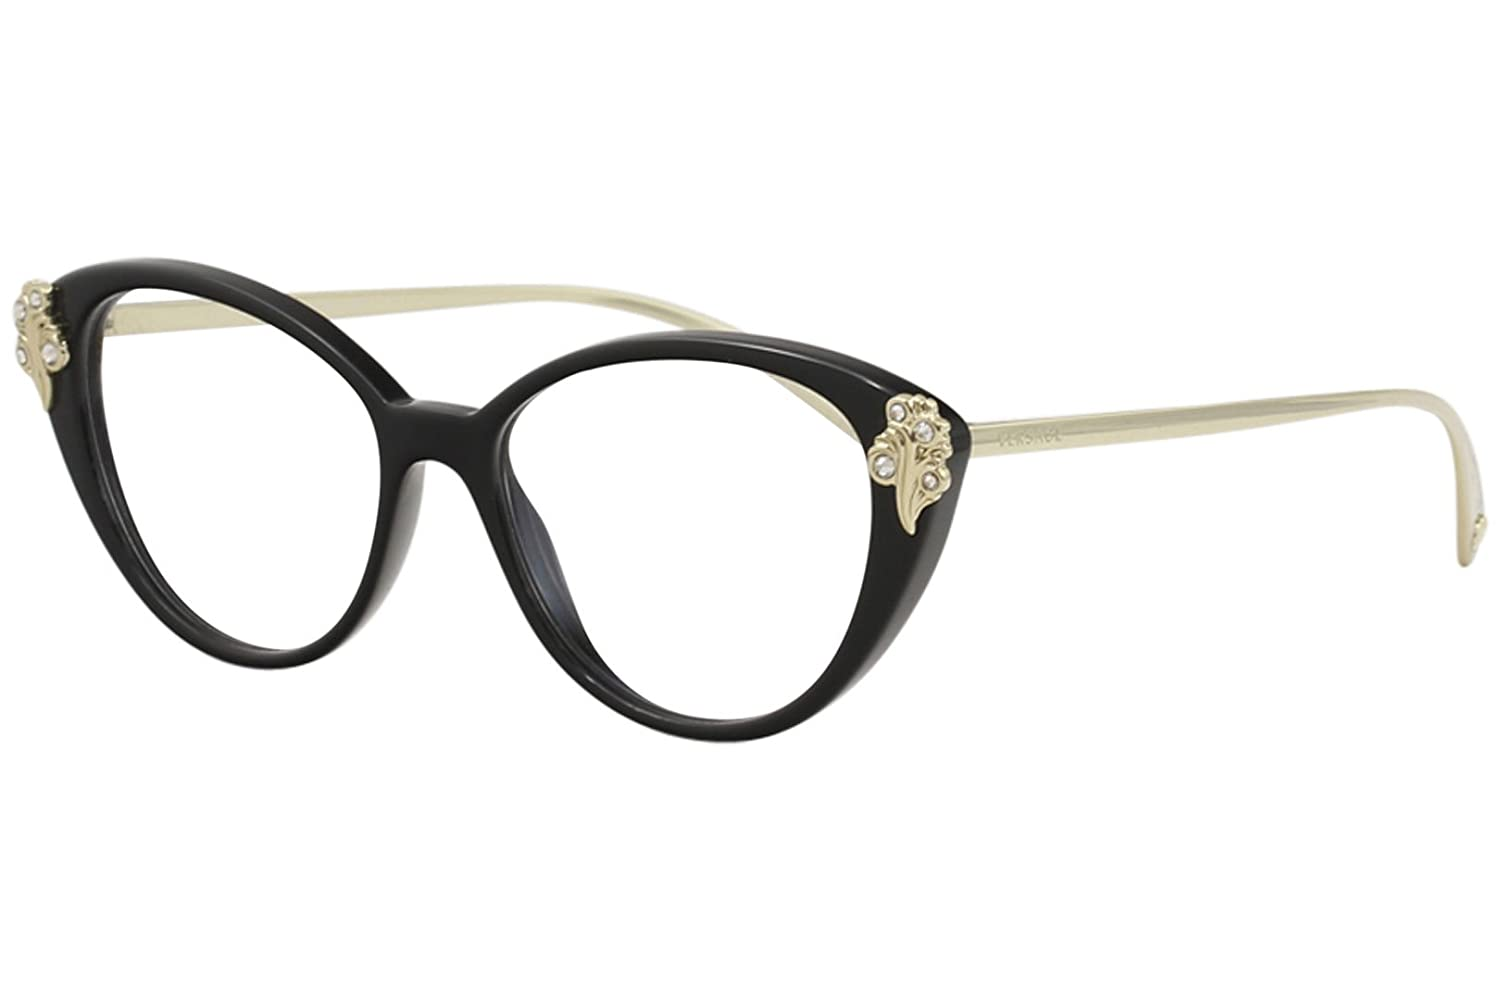 Versace VE3262B Eyeglass Frames GB1-52 - Black VE3262B-GB1-52 BAROCCOMANIA VE 3262B